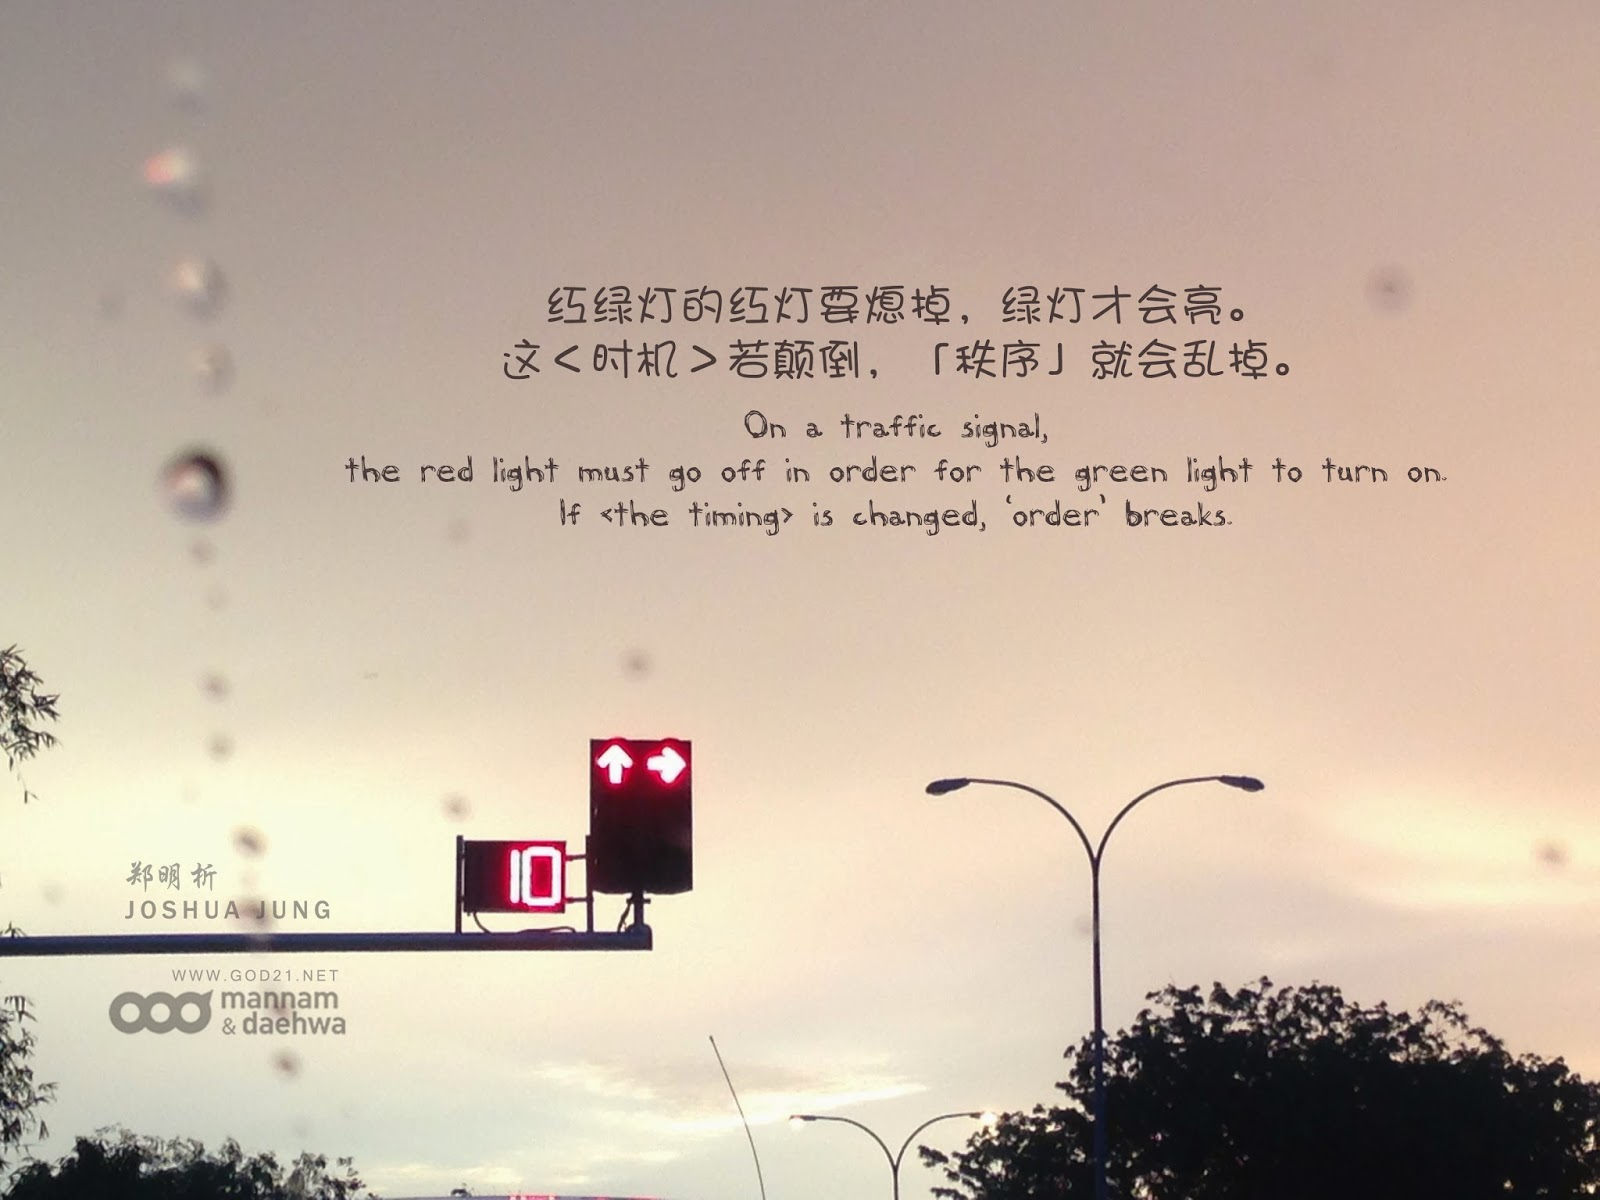 郑明析,摄理教会,月明洞,红绿灯,亮,时机,次序,Joshua Jung, Providence, Wolmyeong Dong, traffic light, signal, timing, order